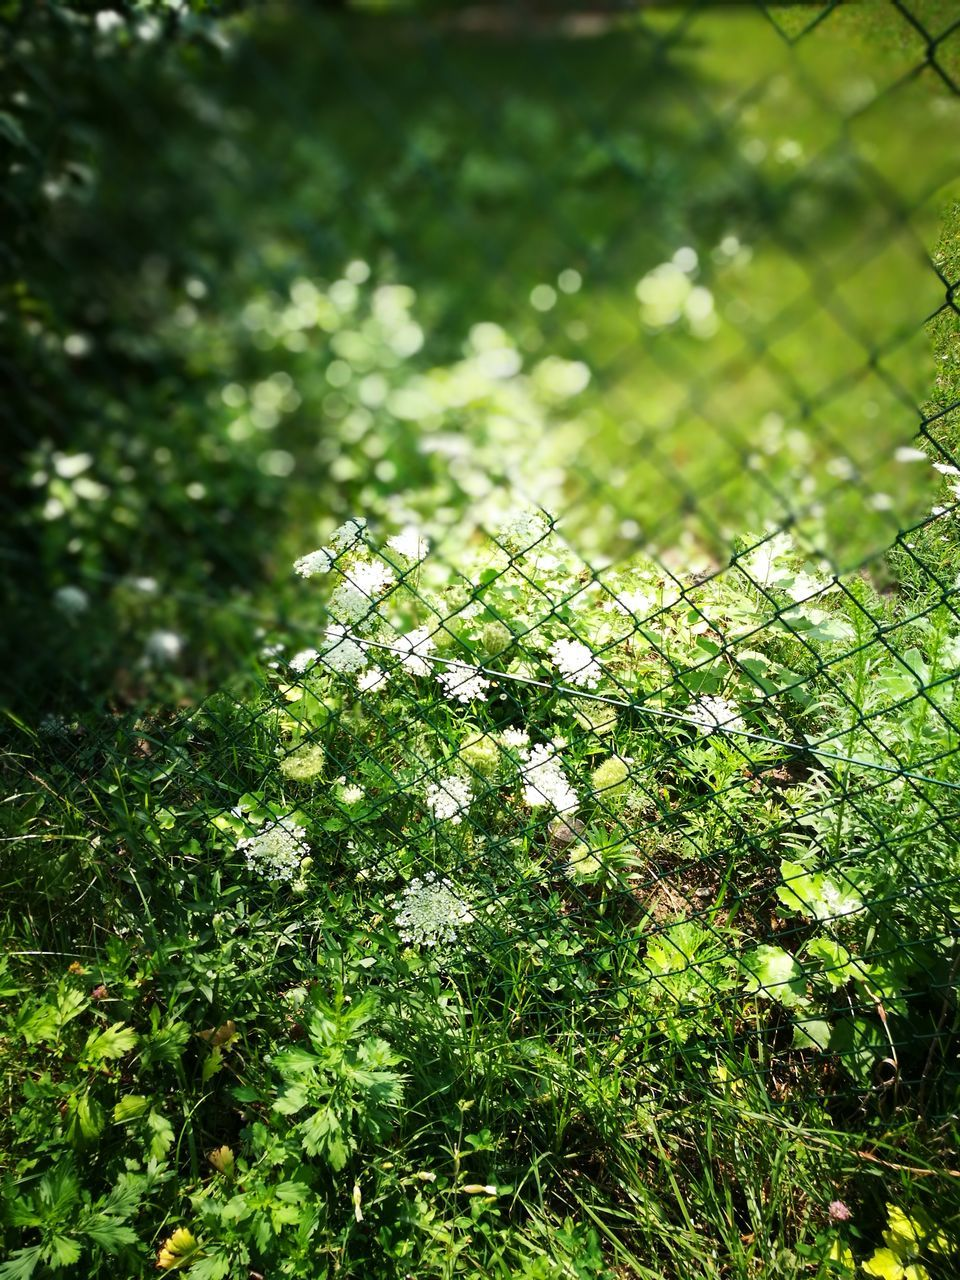 growth, nature, green color, beauty in nature, tree, day, fragility, outdoors, no people, tranquility, branch, freshness, plant, flower, close-up